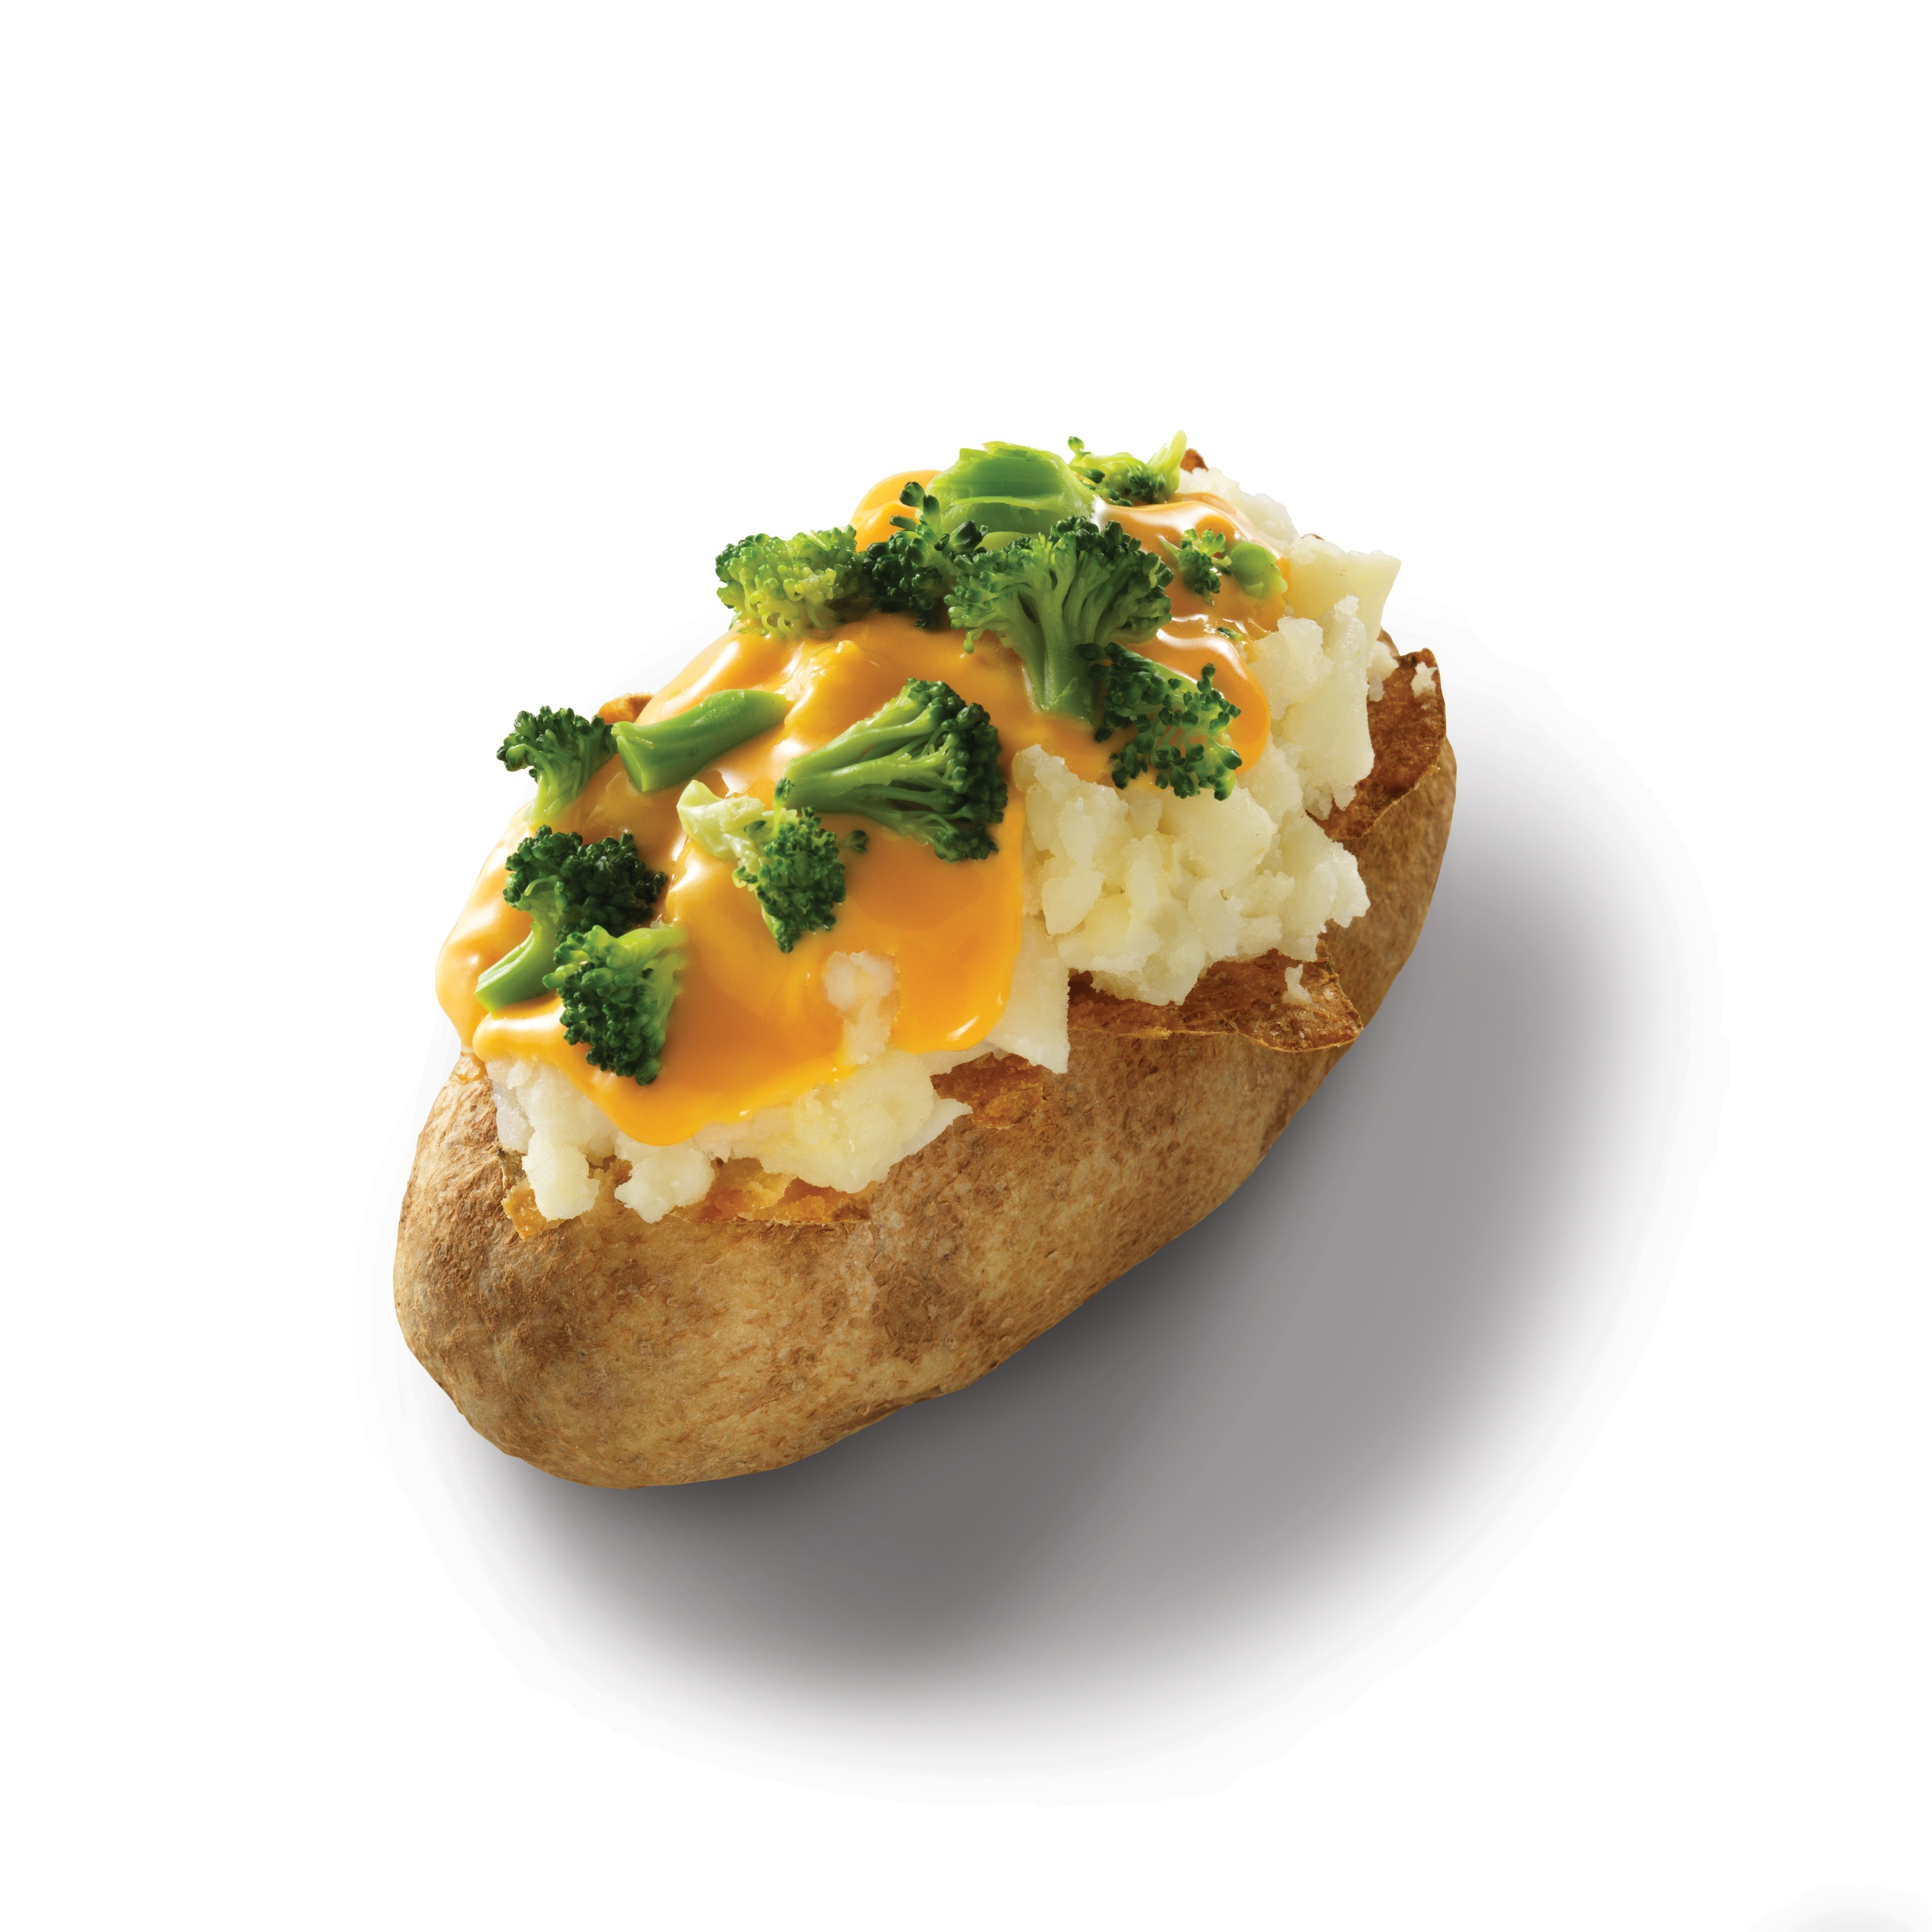 Wendy's broccoli and cheese baked potato